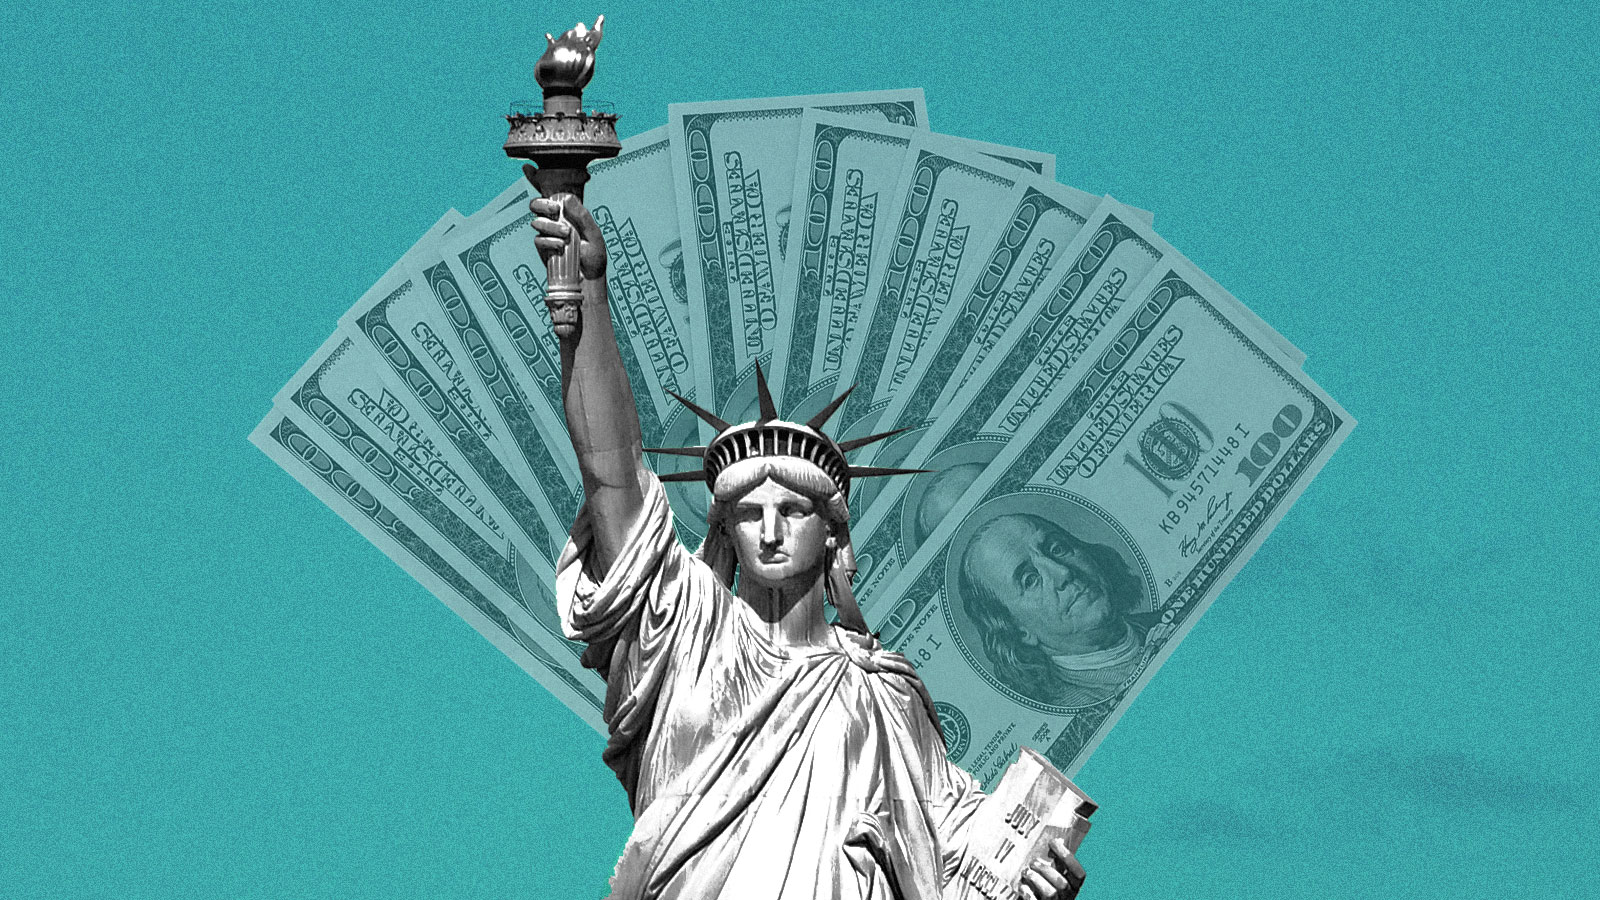 A picture of the Statue of liberty with $100 dollar bills fanned out behind her